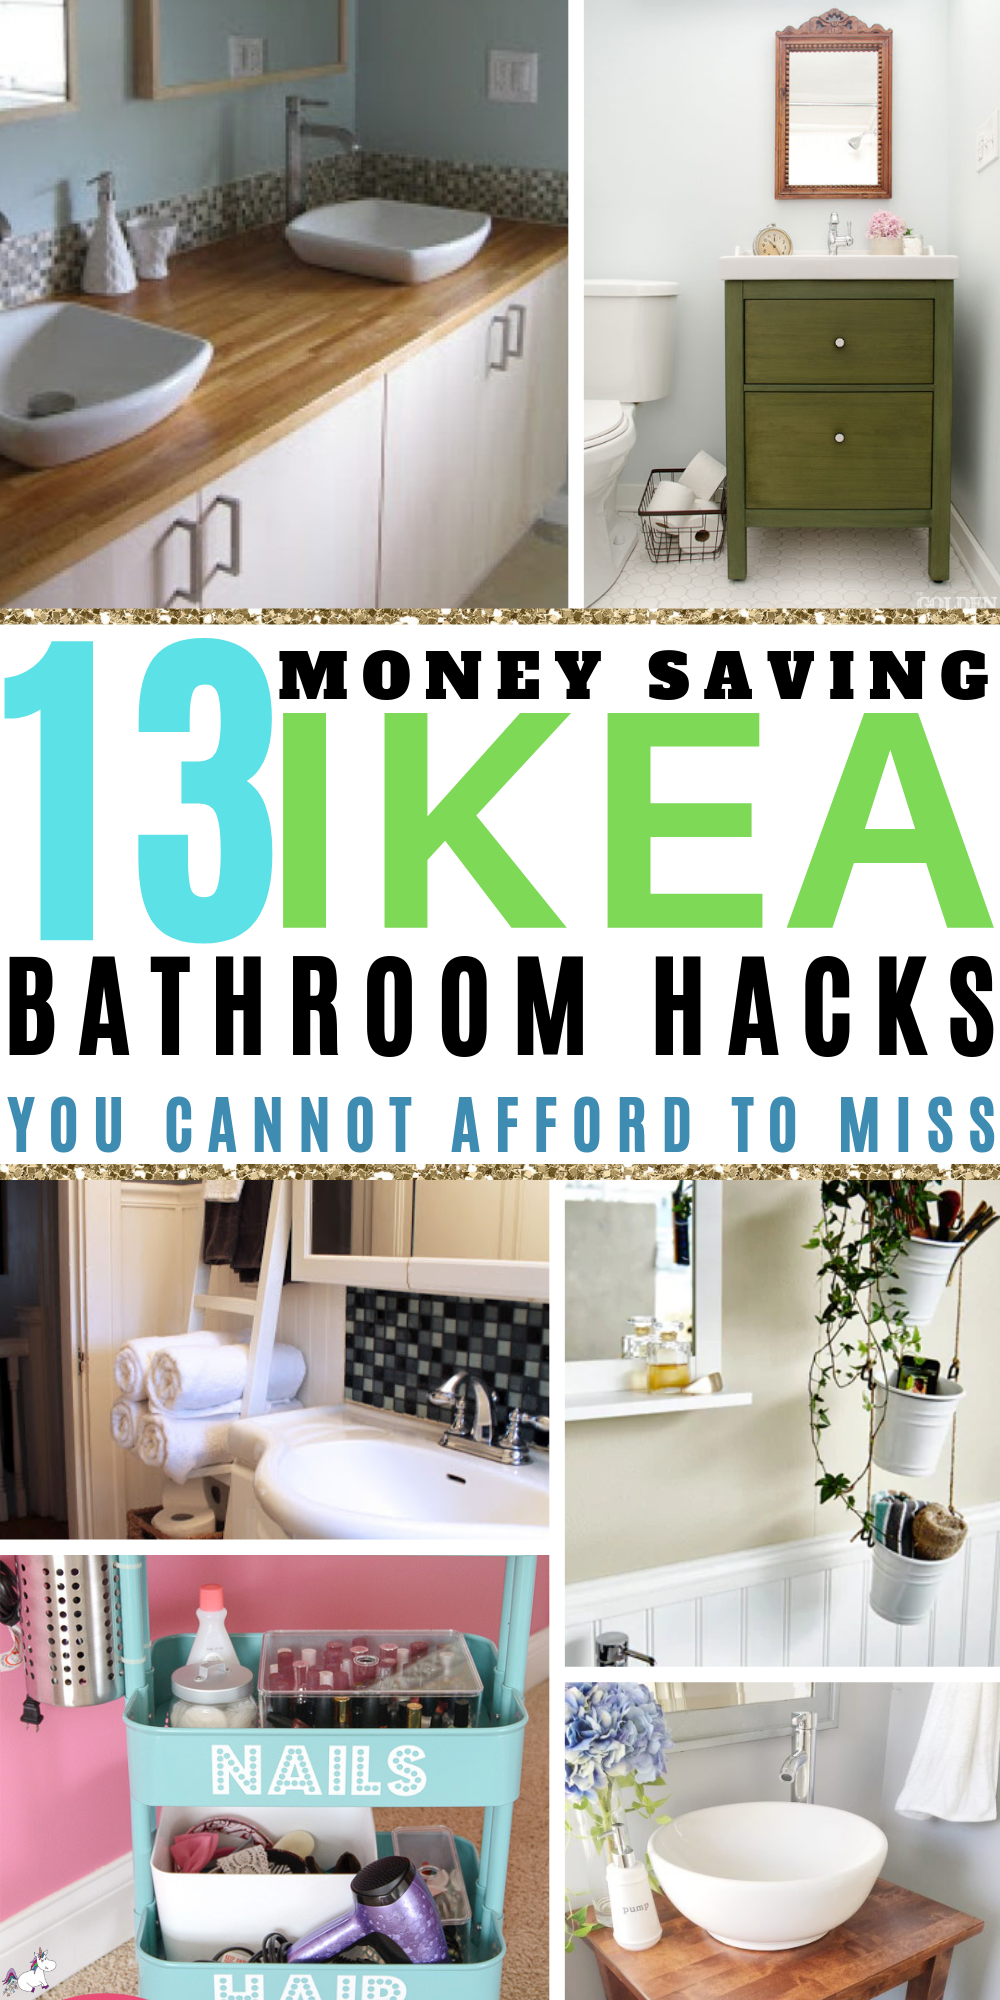 13 Awesome Ikea Bathroom hacks You Will Love If You Love Home Decor On A Budget | ikea hacks | Ikea organization hacks | Ikea storage hacks | Bathroom decor | #bathroomideas #bathroomdesign #bathroomremodelling #bathroomikeahacks #ikeabathroomhacks #diybathroomdecor #bathroomorganization #bathroomstorage #homedecoronabudget